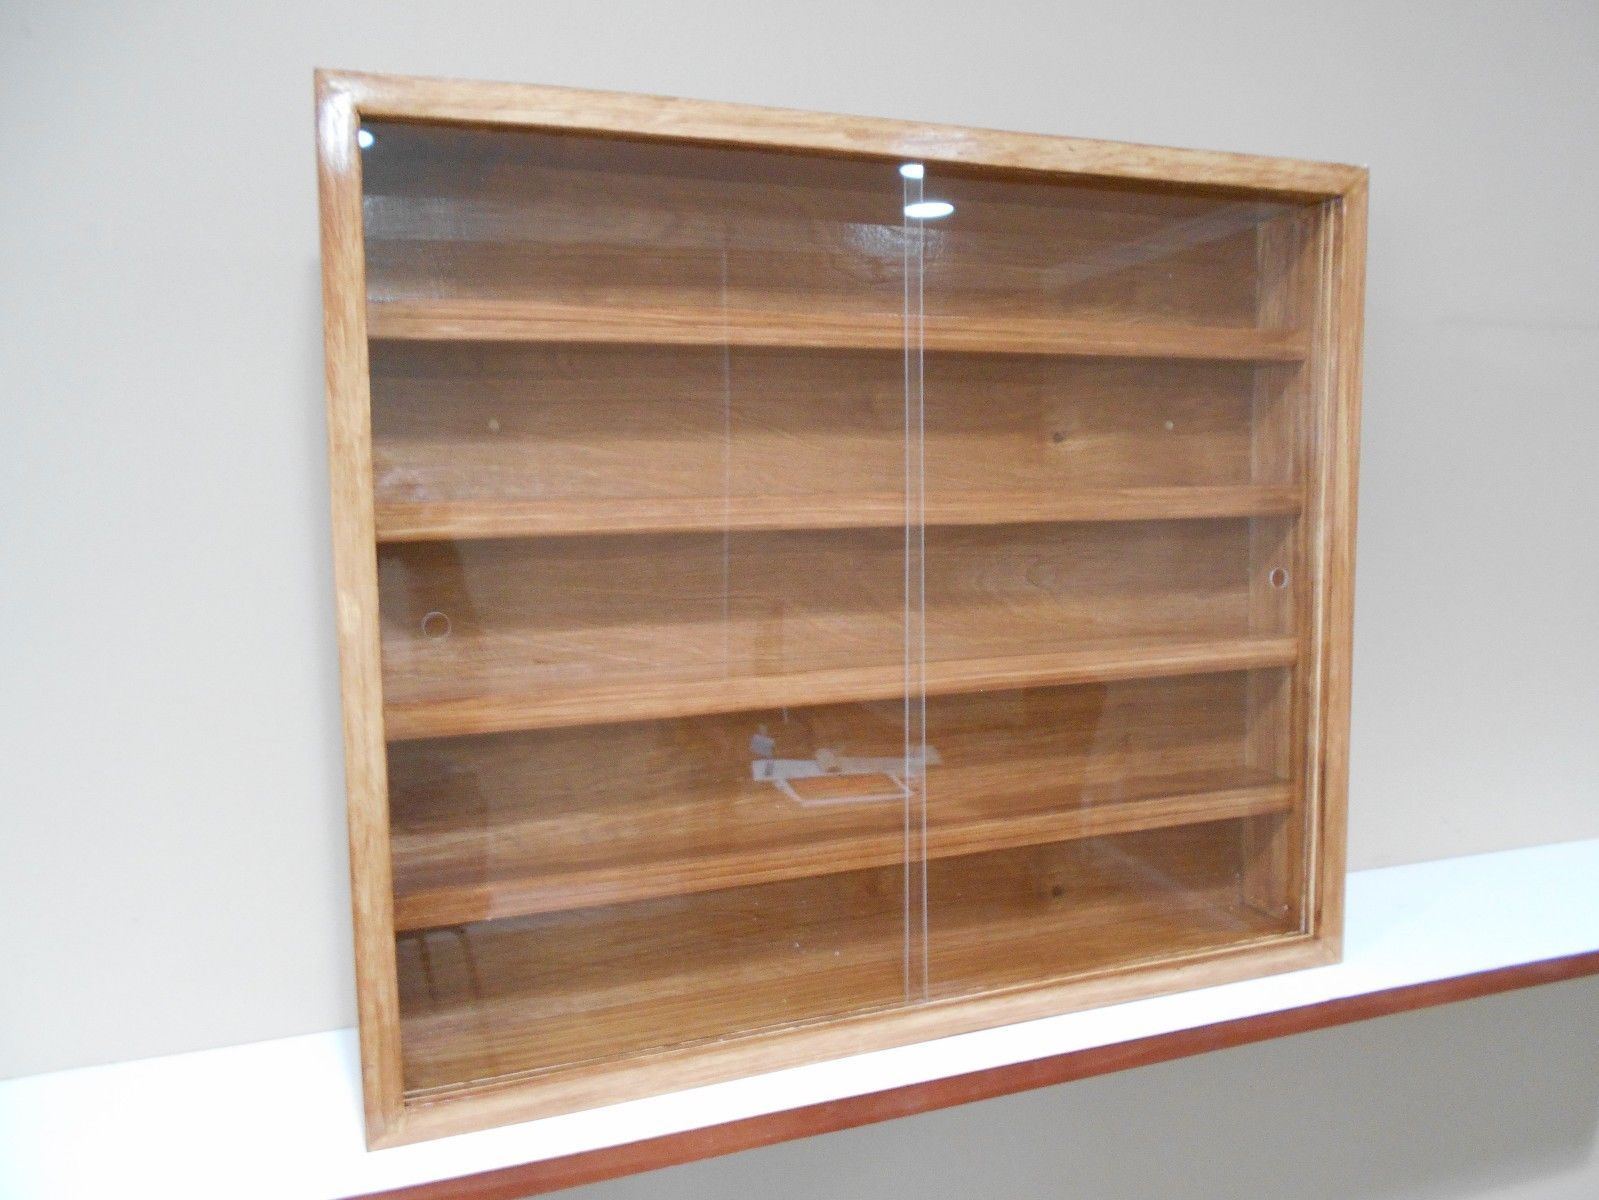 Showcase Wall Display Case Cabinet Shelves For Collectibles Cars Others B For Sale 59 00 See Photos Functional Display Case Shelves Wall Display Case